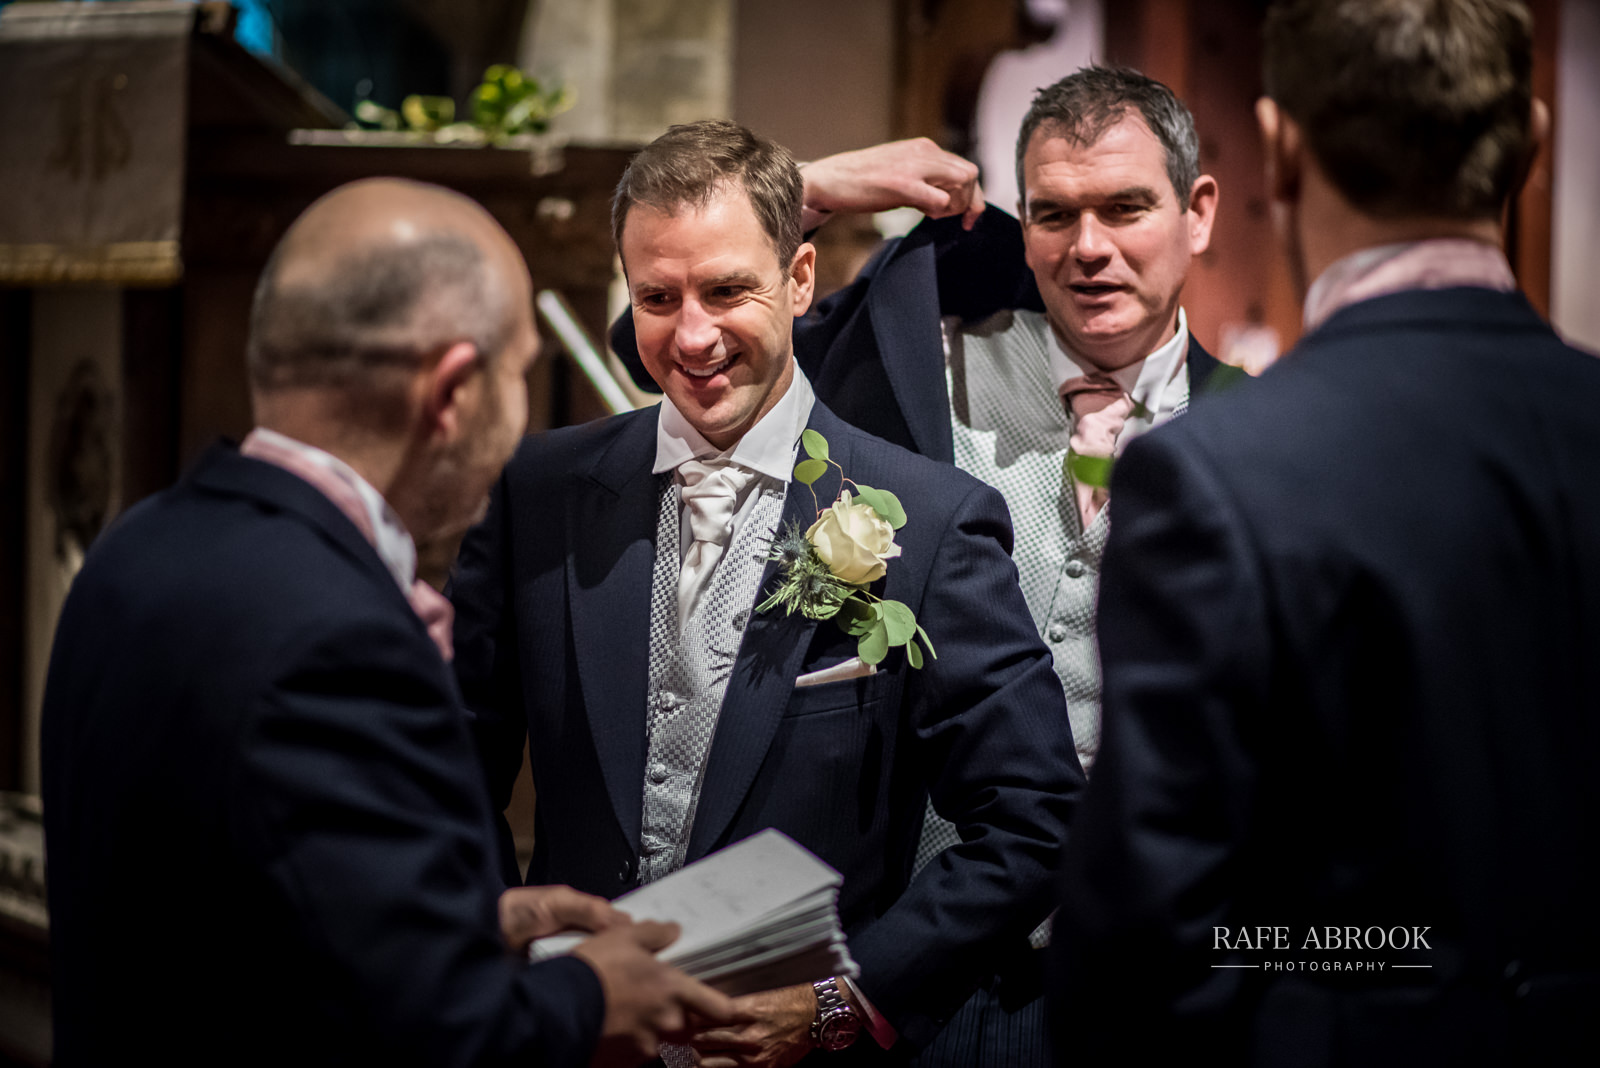 goldsborough hall wedding harrogate knaresborough yorkshire hertfordshire wedding photographer-1035.jpg